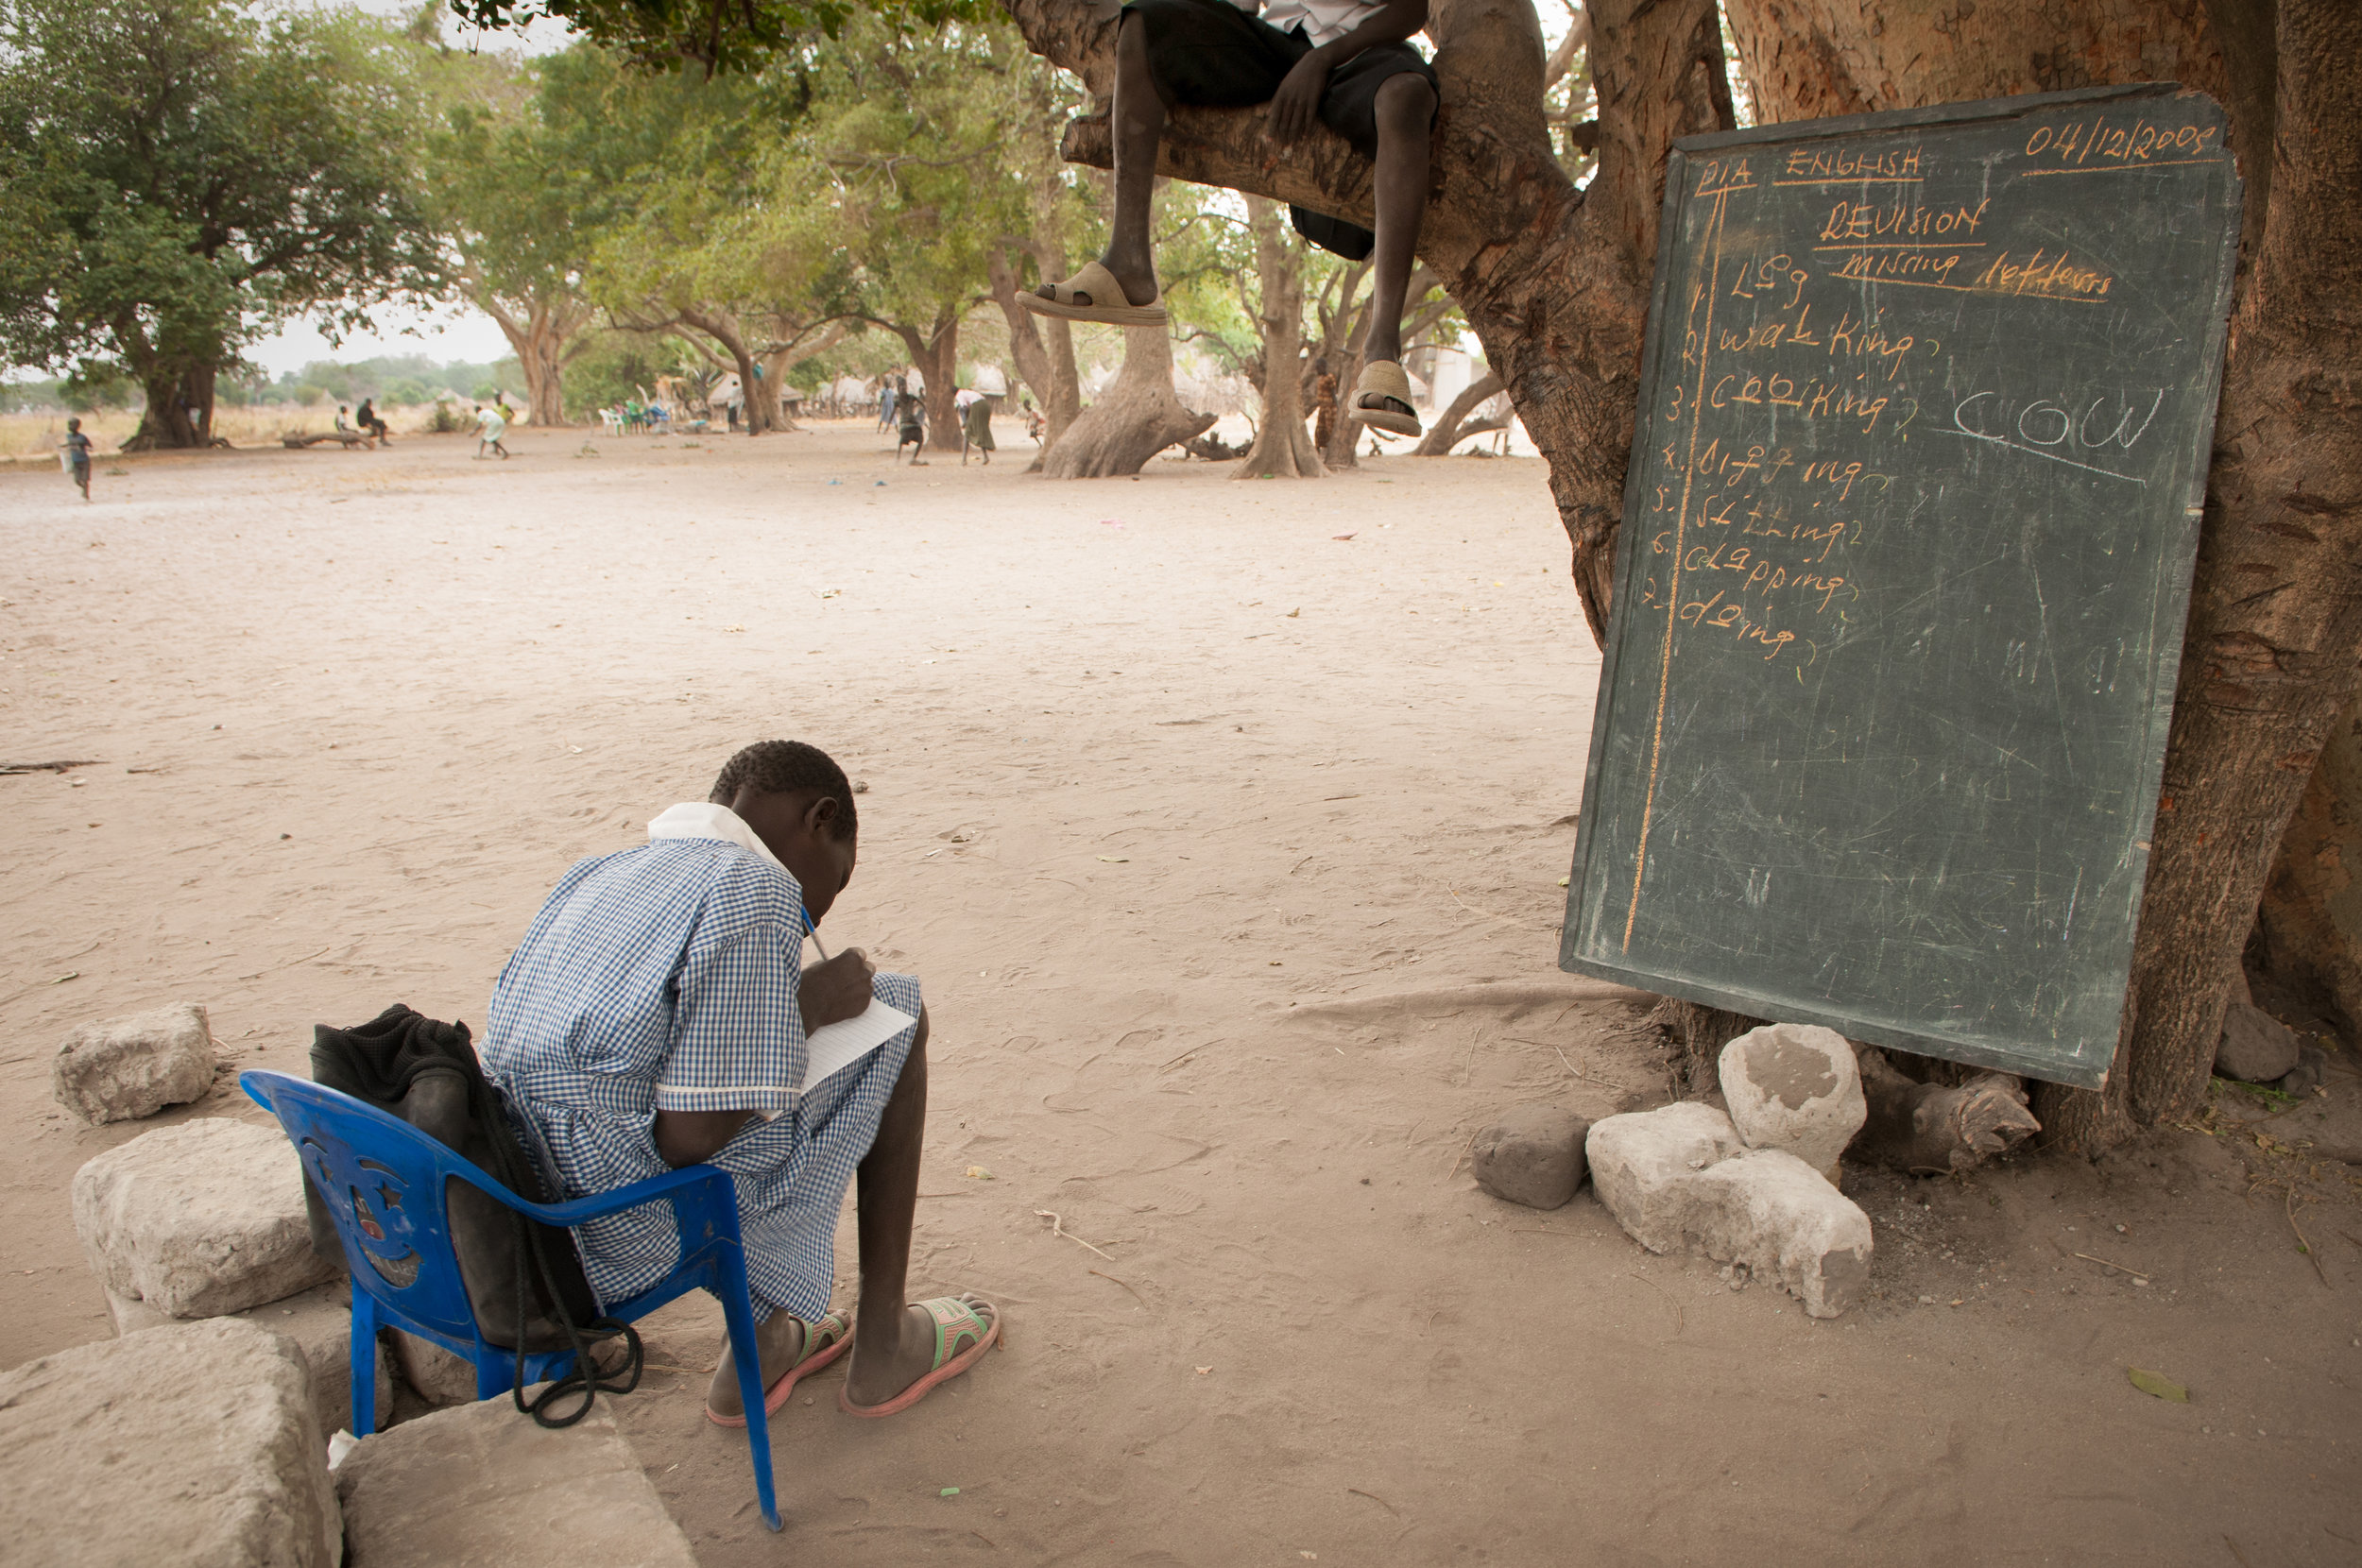 An elementary school student in Duk Payuel practices English as a classmate rests in the tree above.